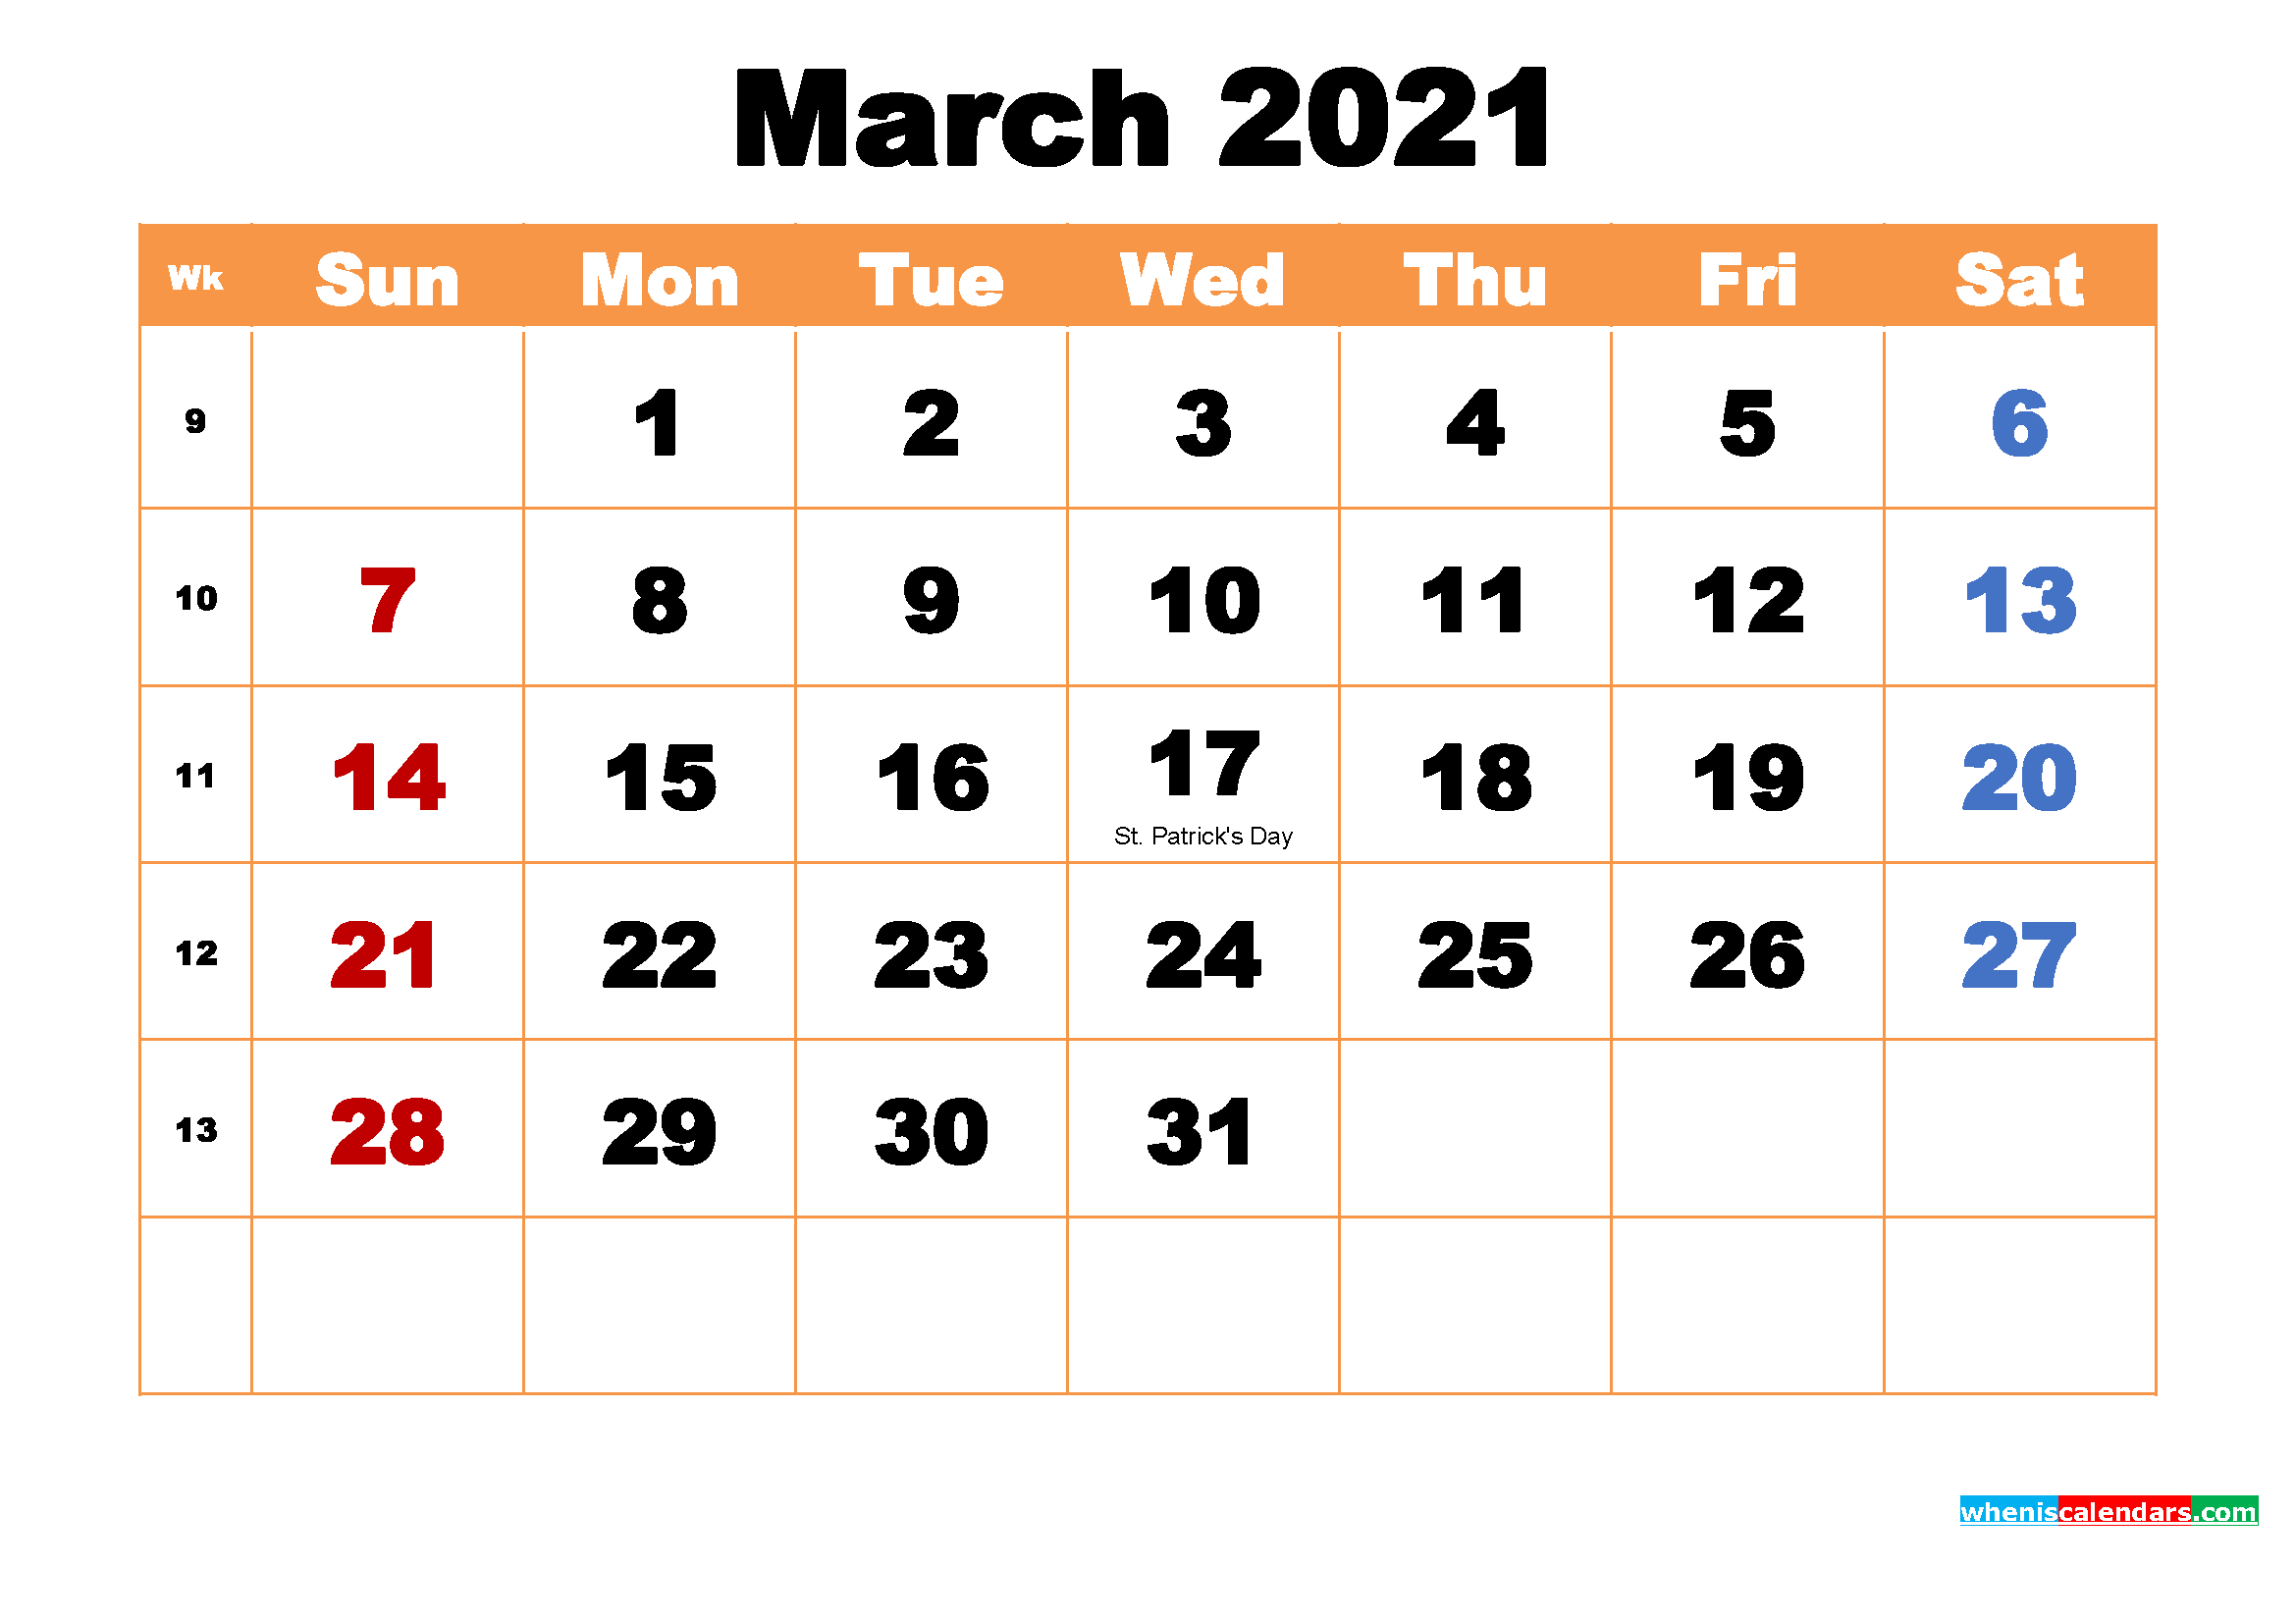 March 2021 Calendar Wallpaper High Resolution